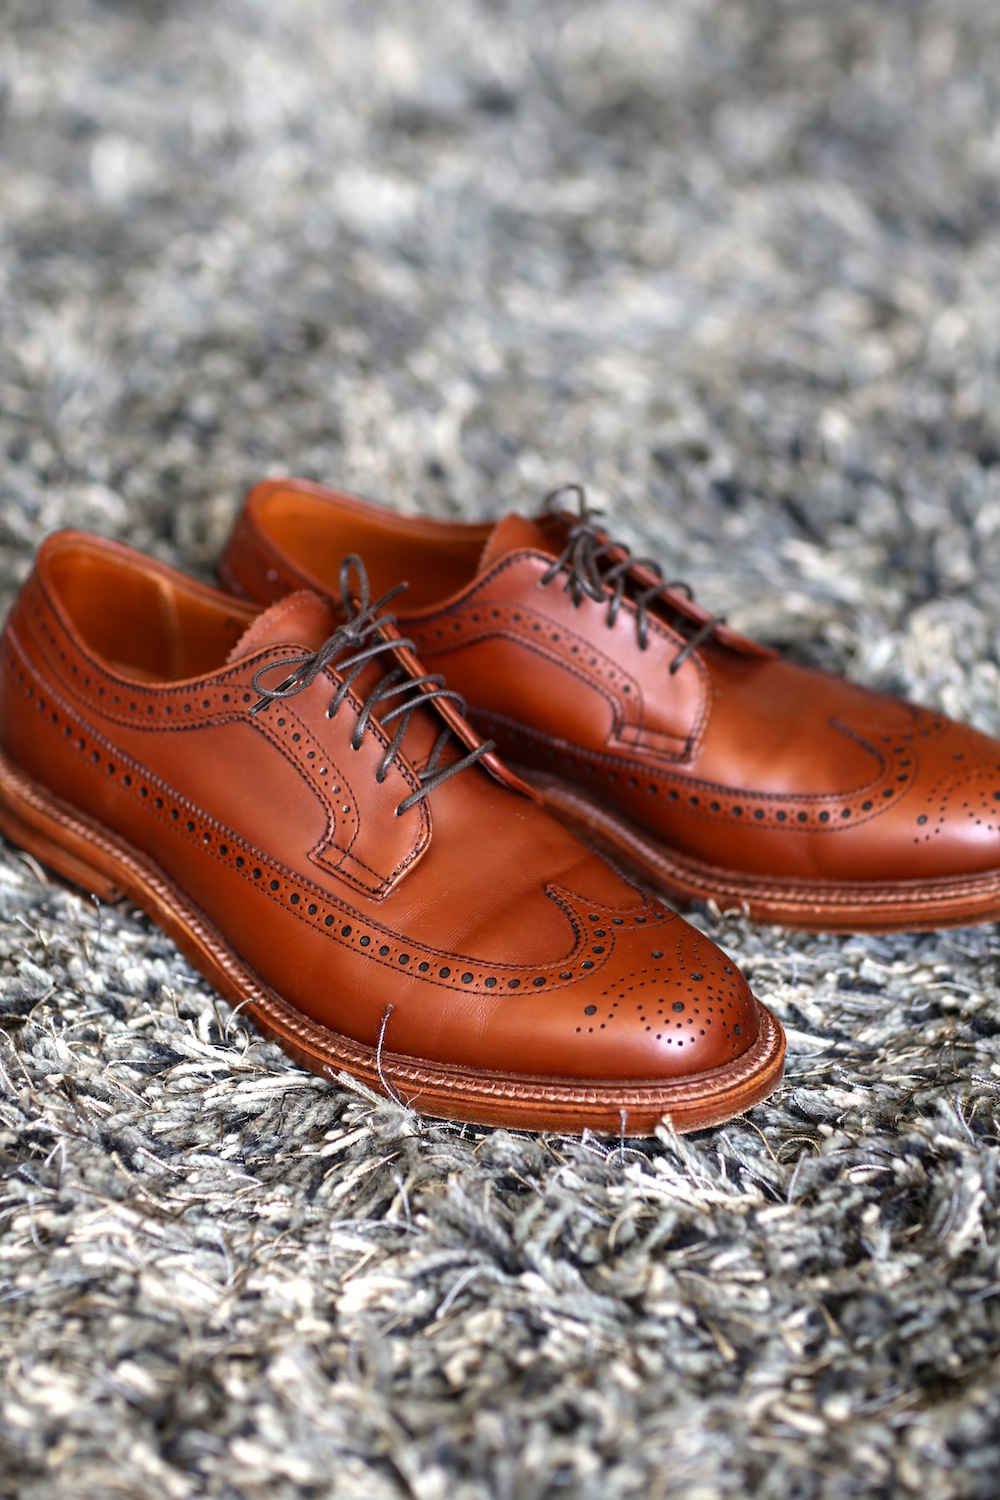 A Beautiful Pair of Alden Shoes